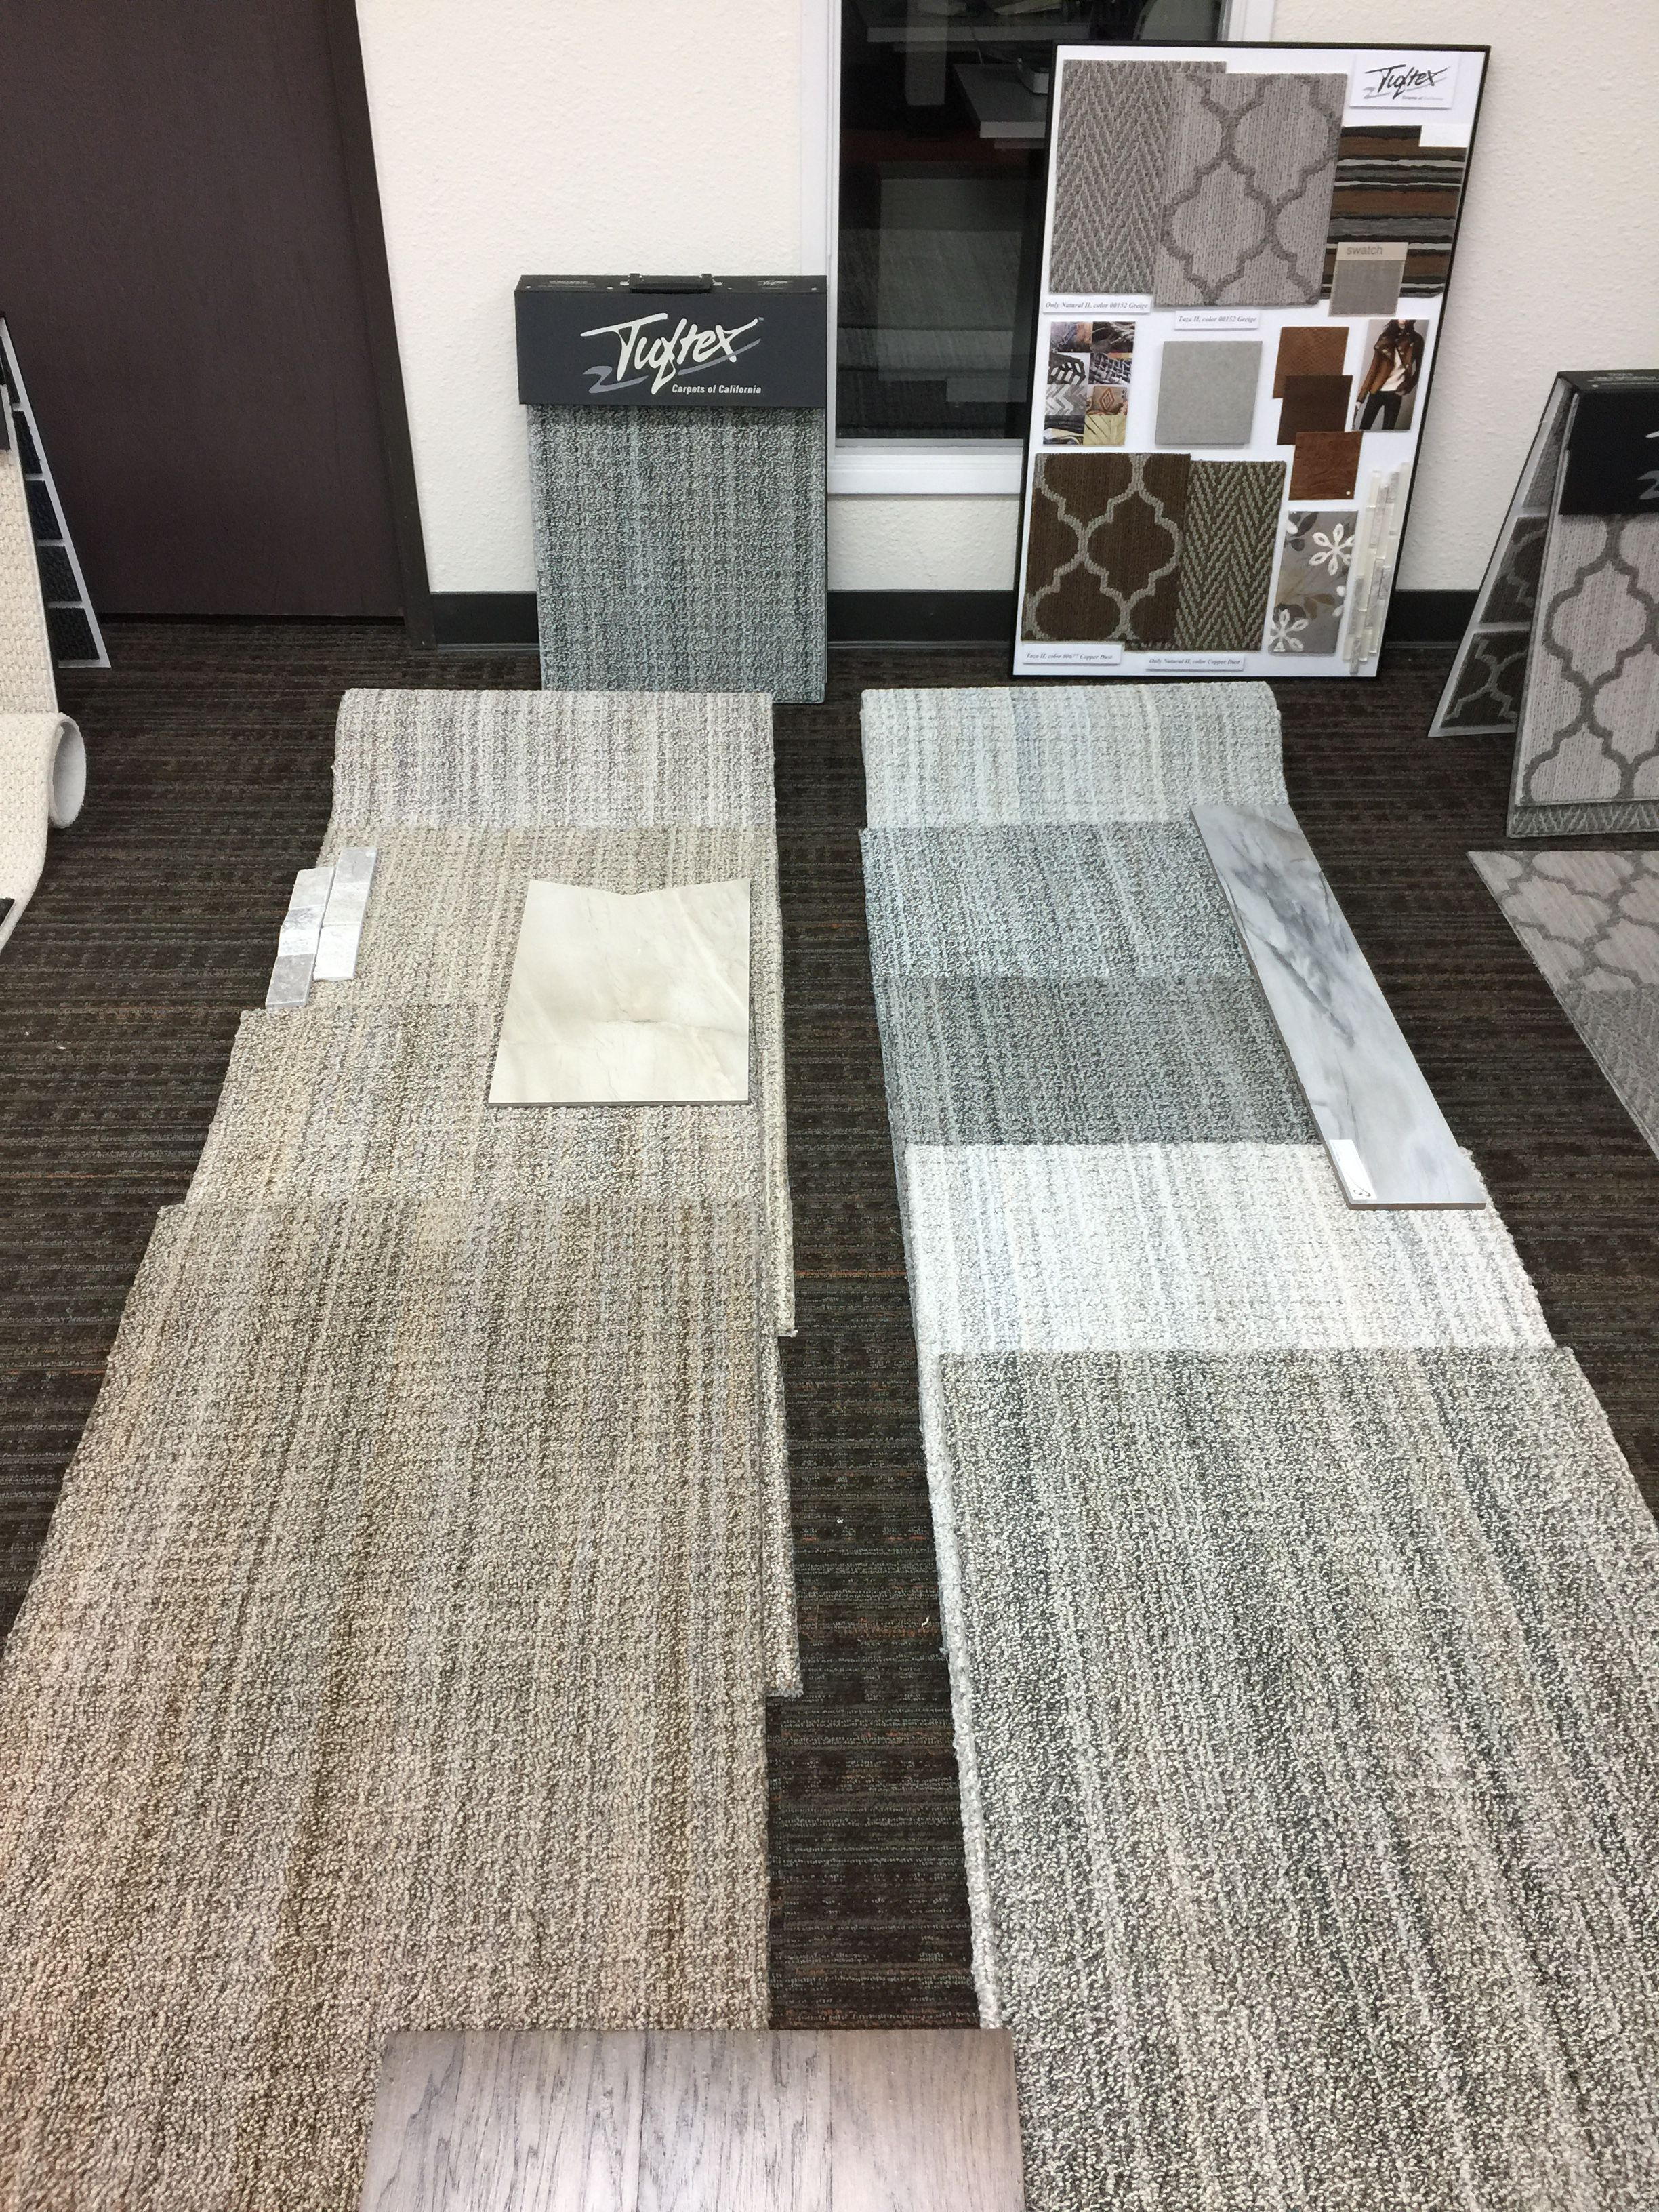 2017 New Tuftex Carpet Style Look for it at any Shaw Dealer